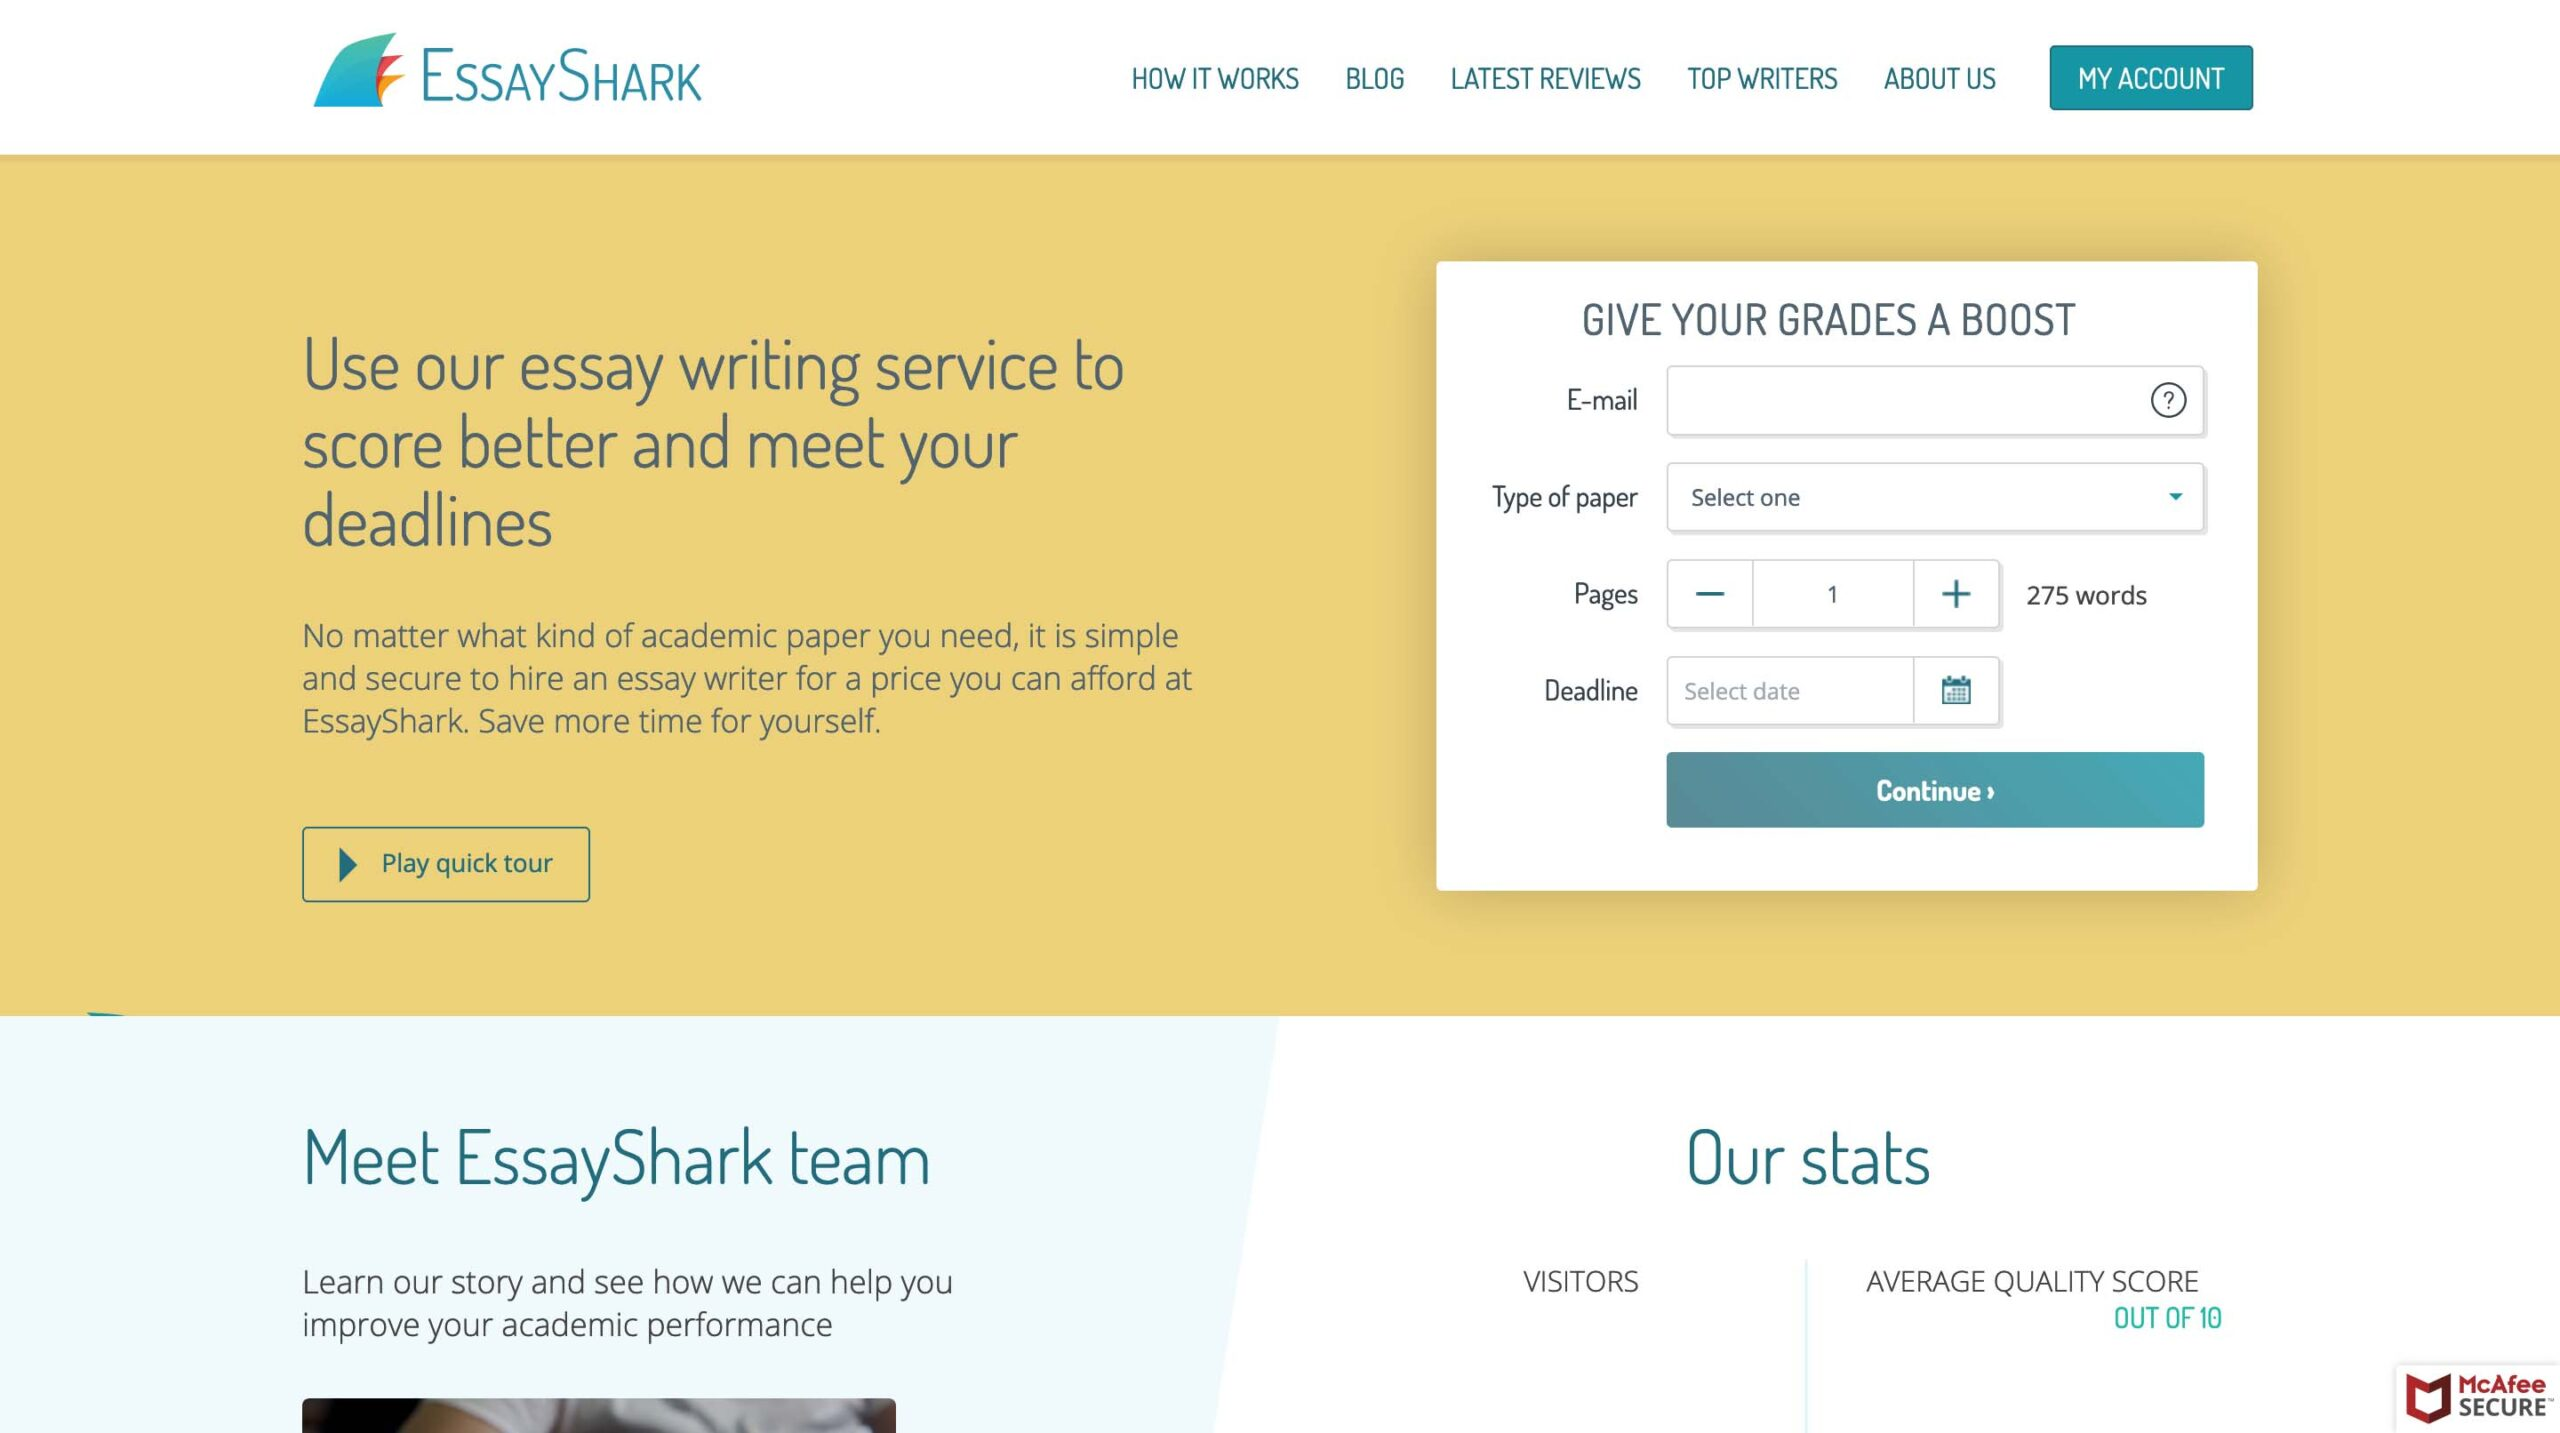 EssayShark.com website